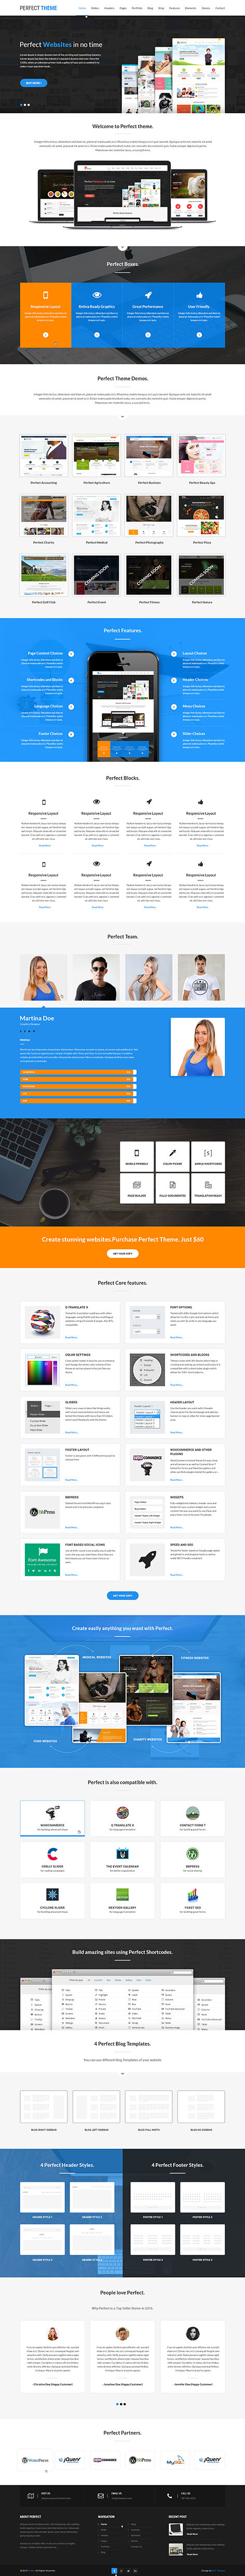 commercial wordPress theme1 - Perfect